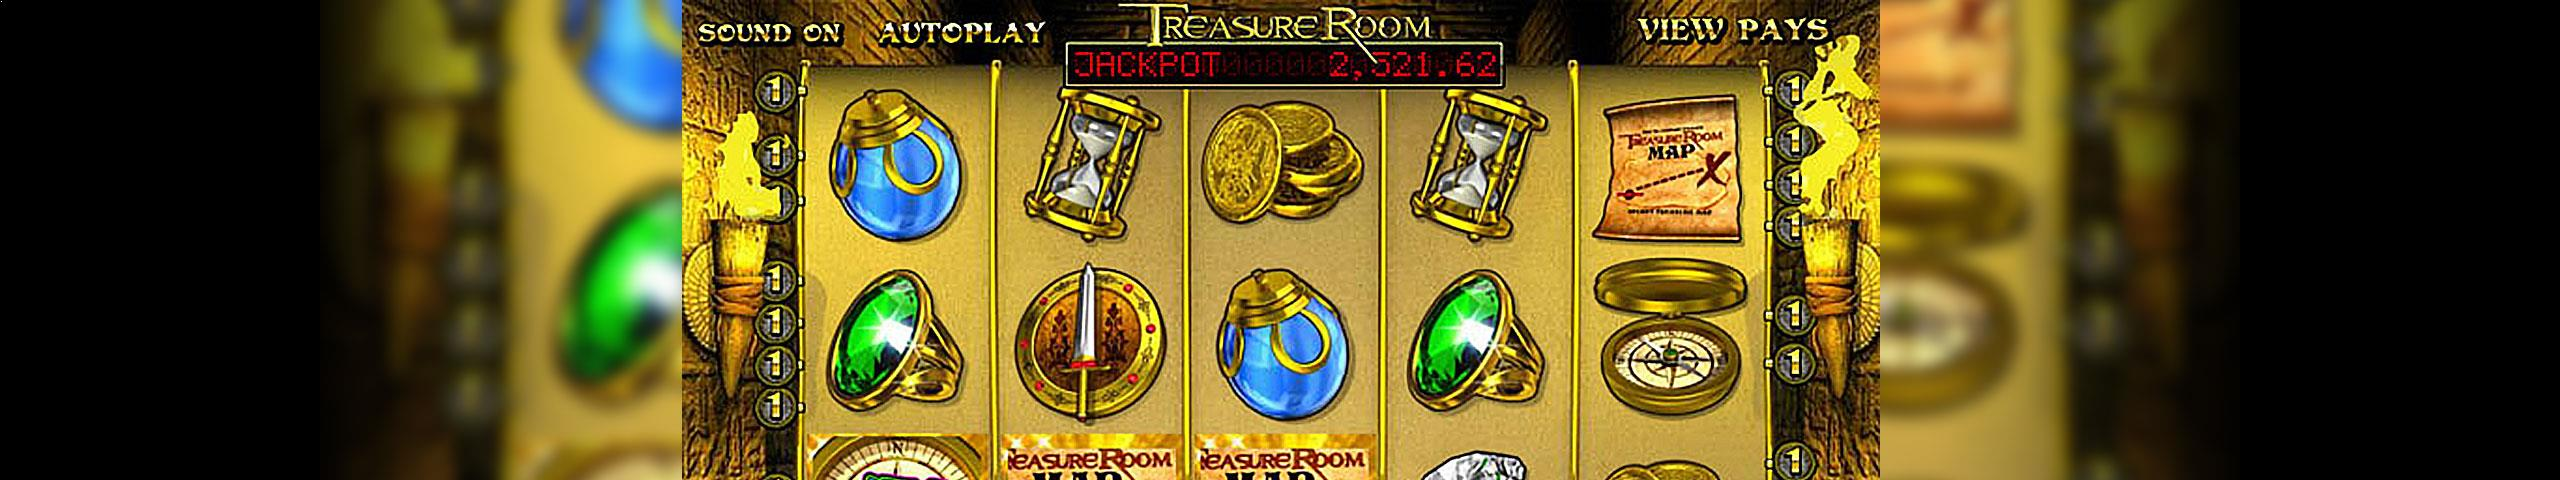 Treasure Room Betsoft jocuri slot slider